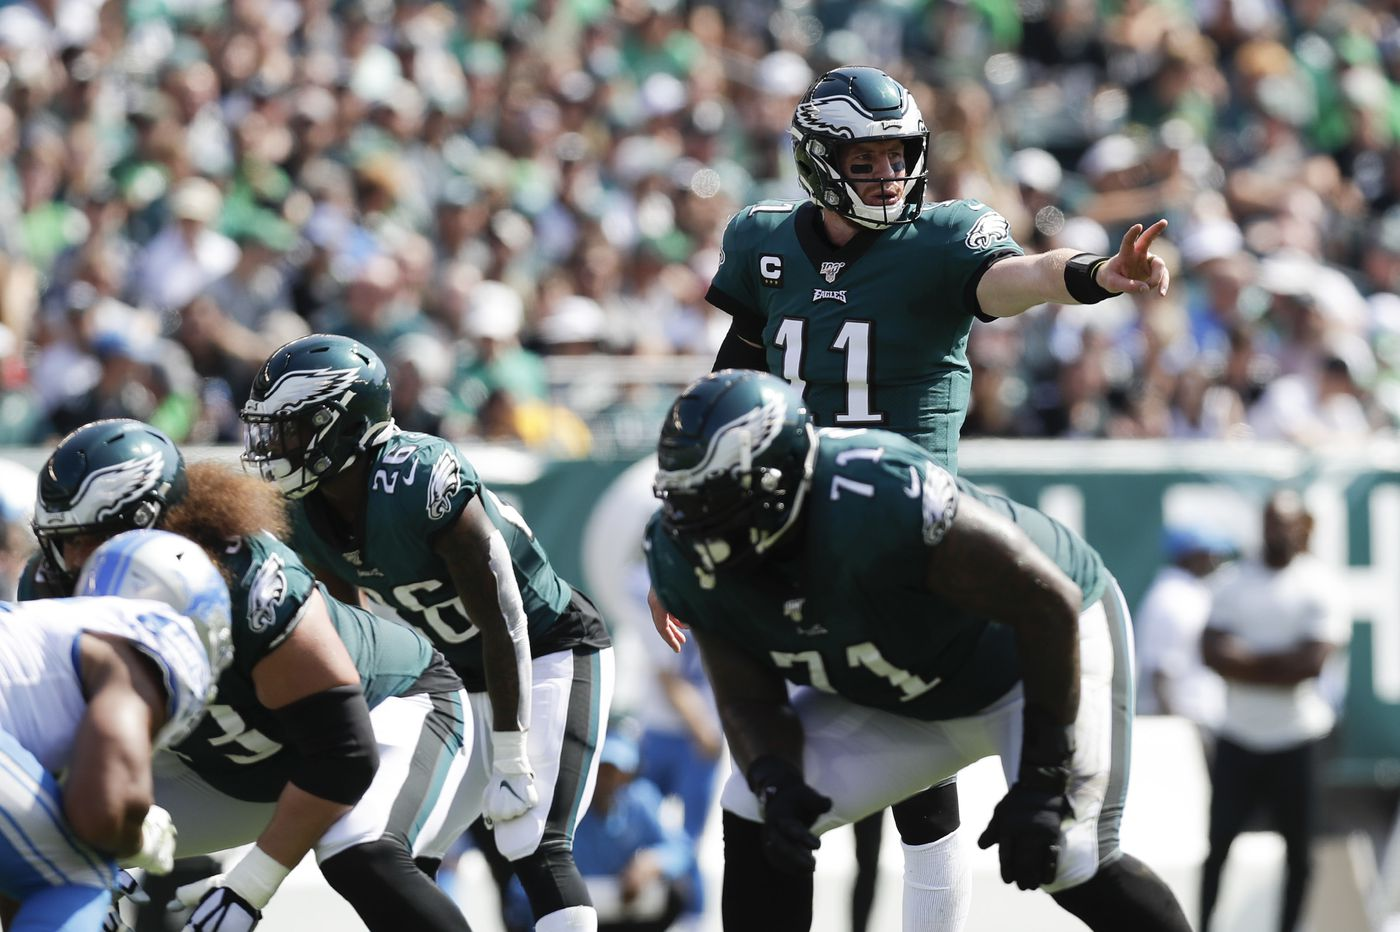 Carson Wentz Facing A Big Challenge At Lambeau From Mike Pettine